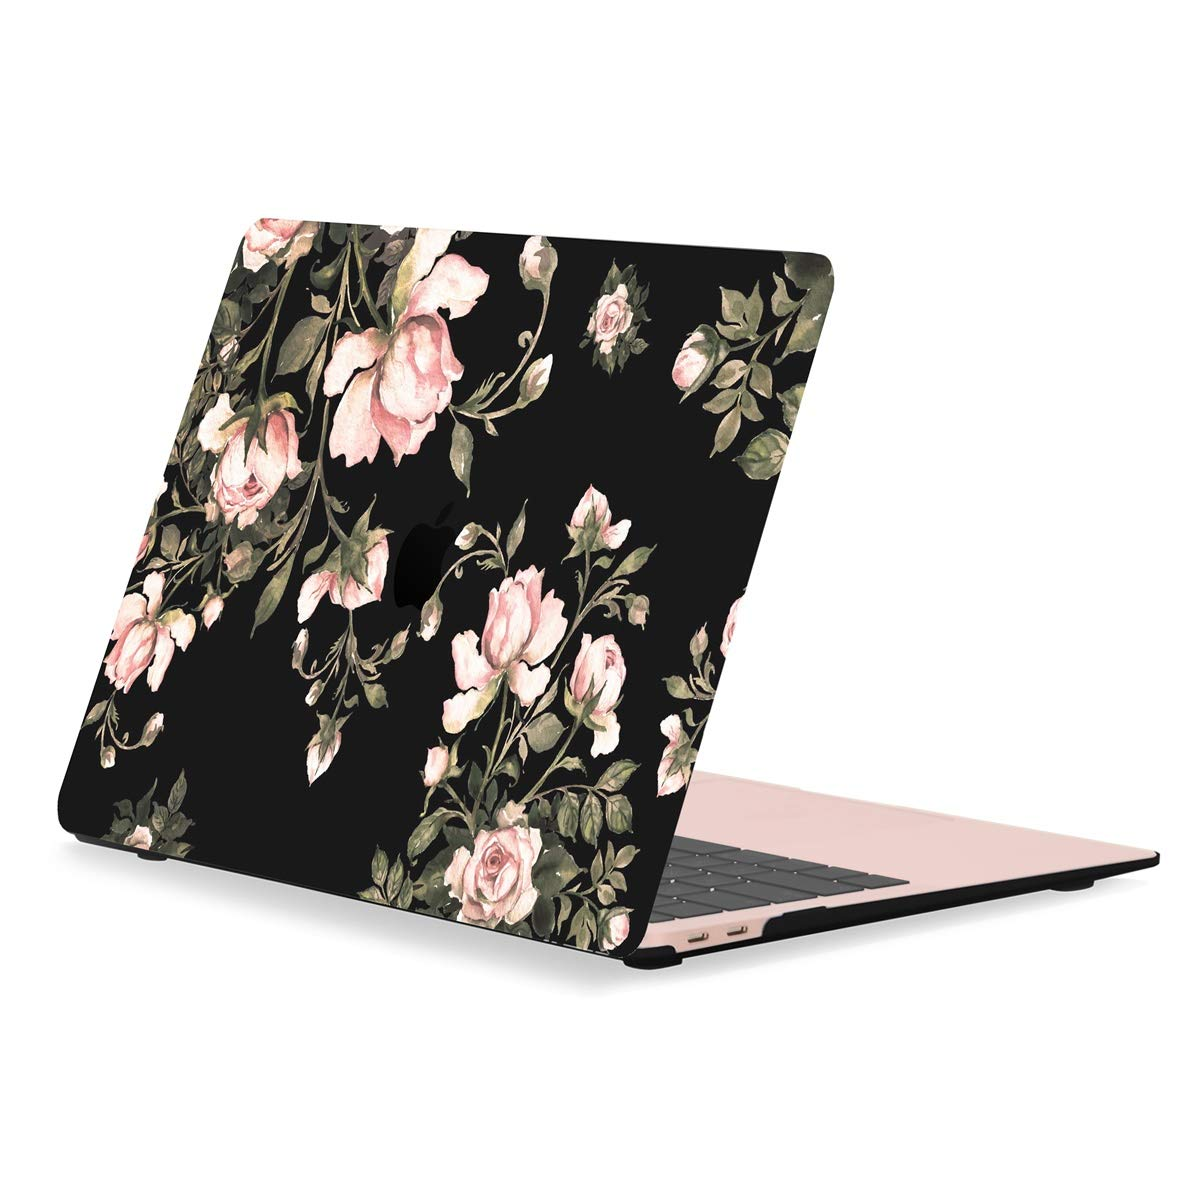 "TOP CASE MacBook Air 13 Inch Case 2019 2018 Release A1932 Retina Display, Classic Series Victorian Pattern Hard Case Compatible MacBook Air 13"" with Retina Display fits Touch ID A1932 - Black"